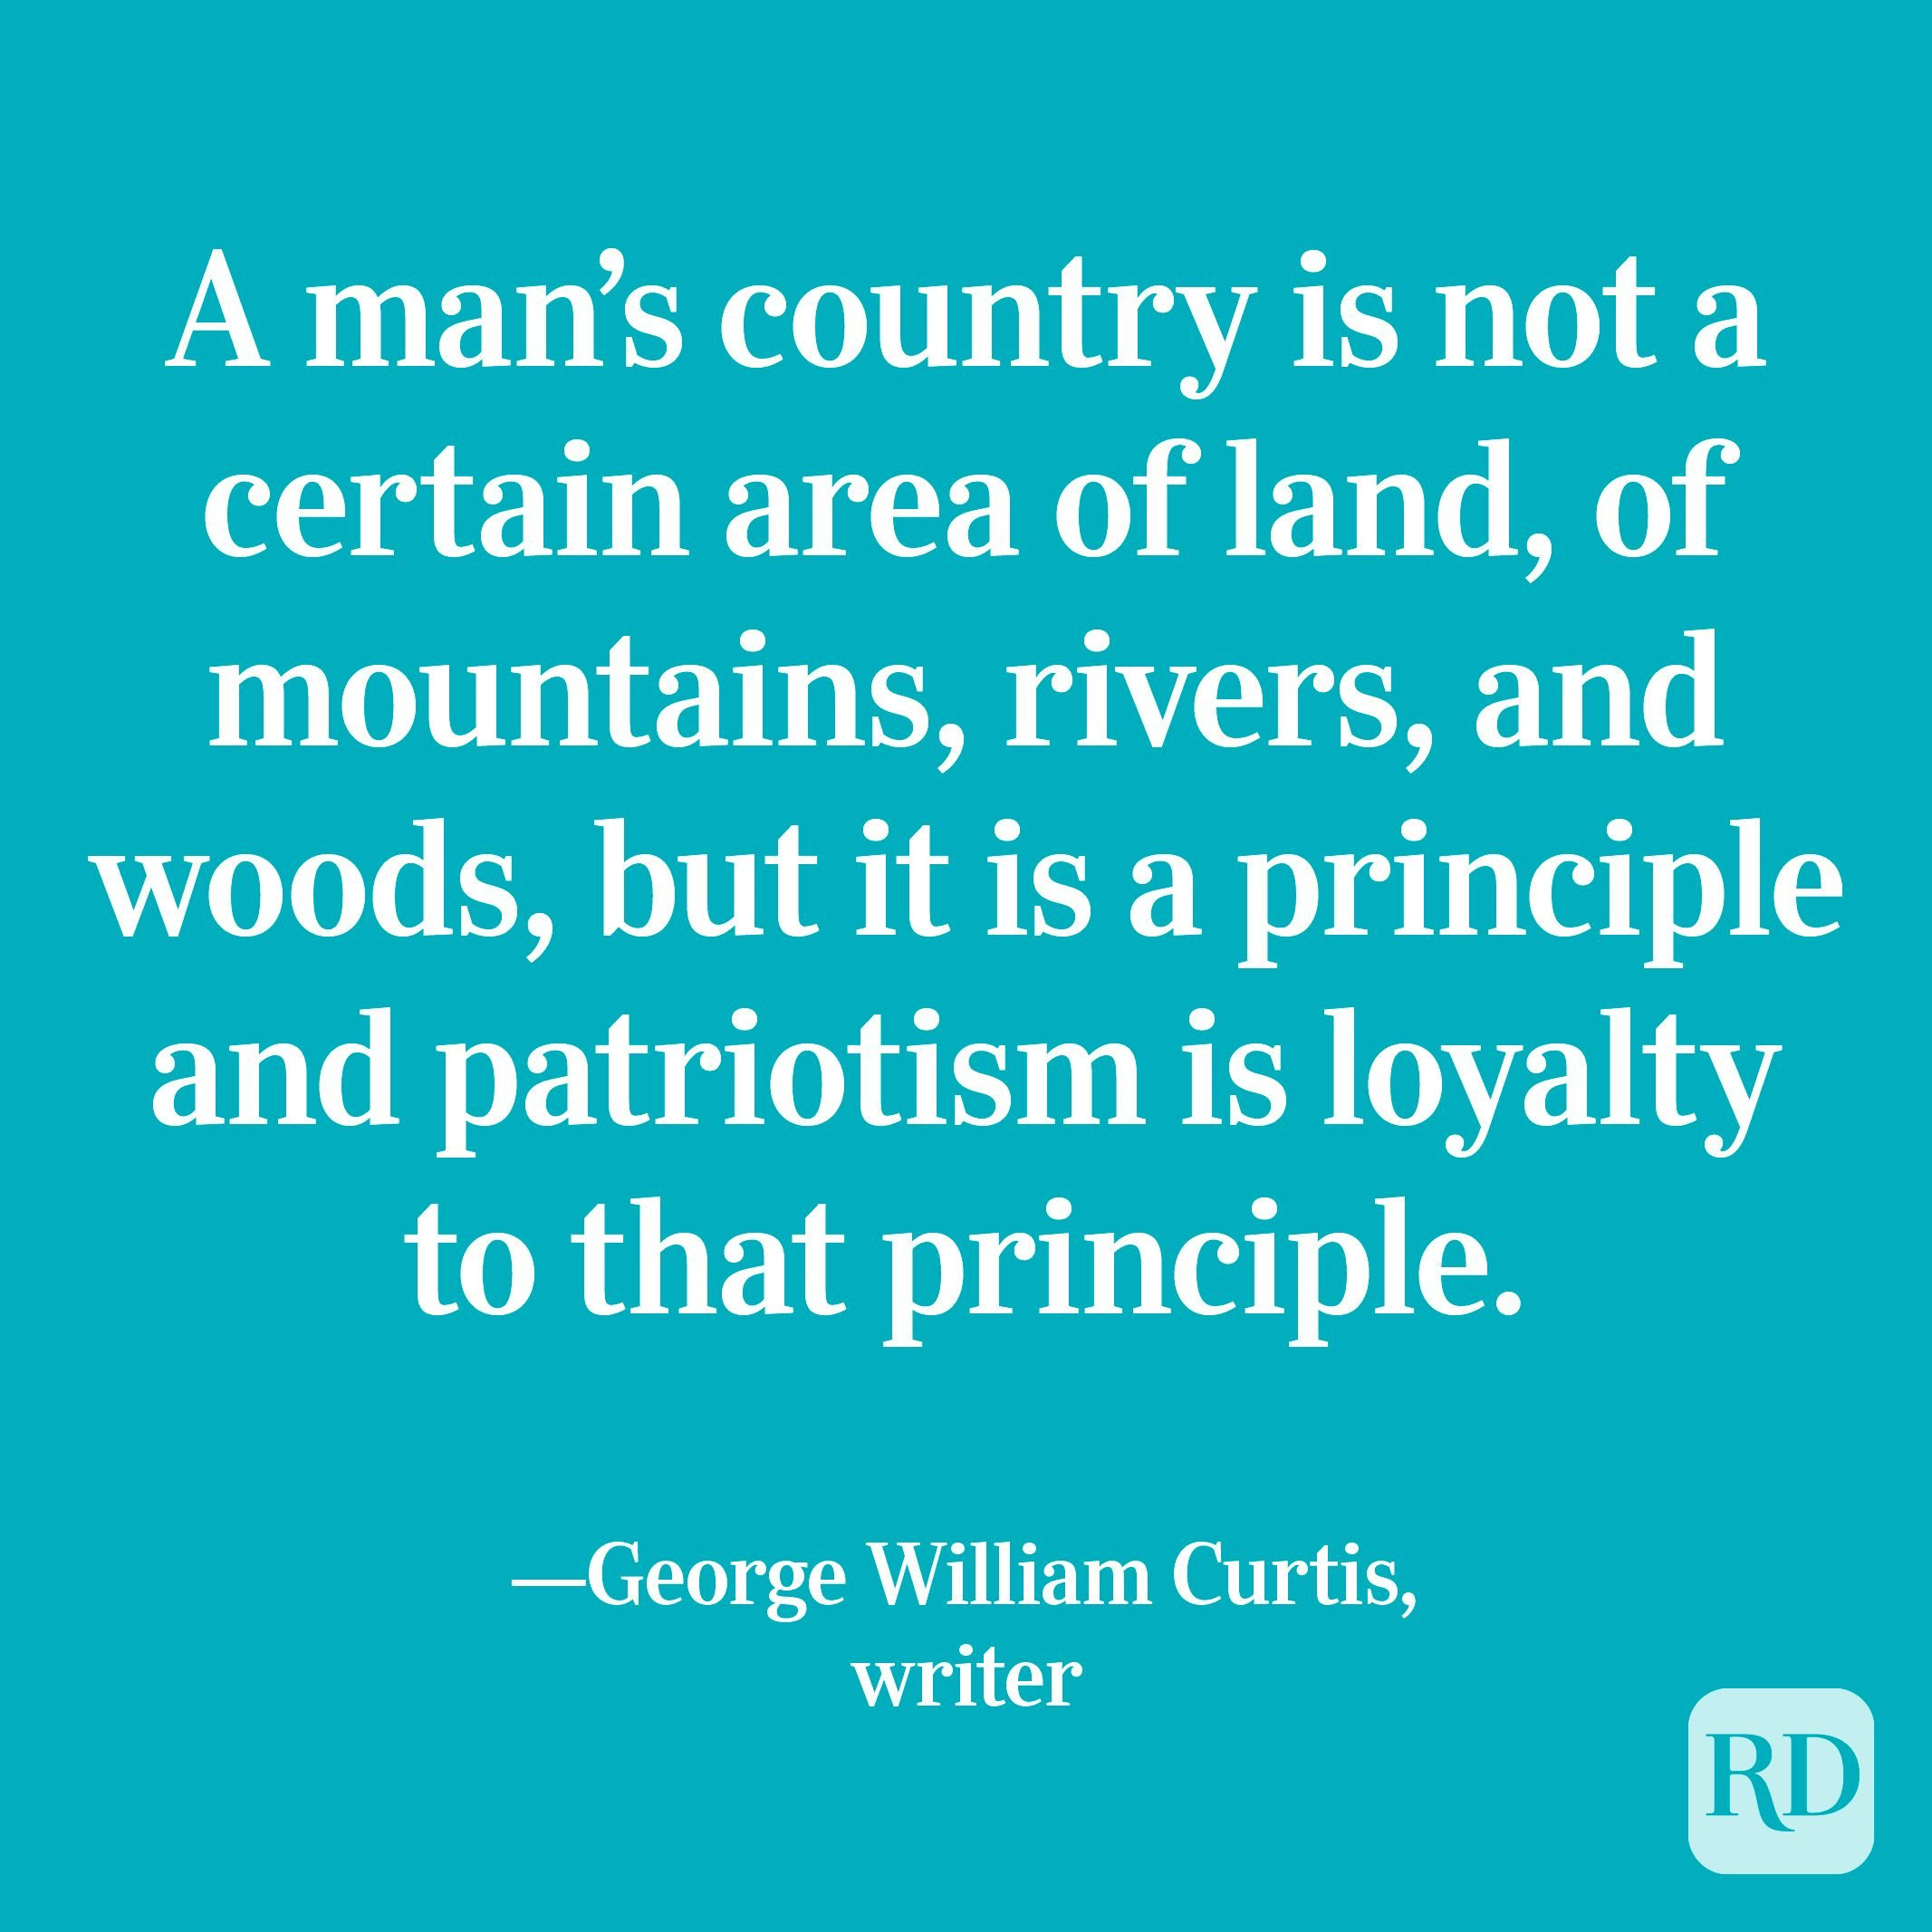 """""""A man's country is not a certain area of land, of mountains, rivers, and woods, but it is a principle and patriotism is loyalty to that principle."""" —George William Curtis, writer"""